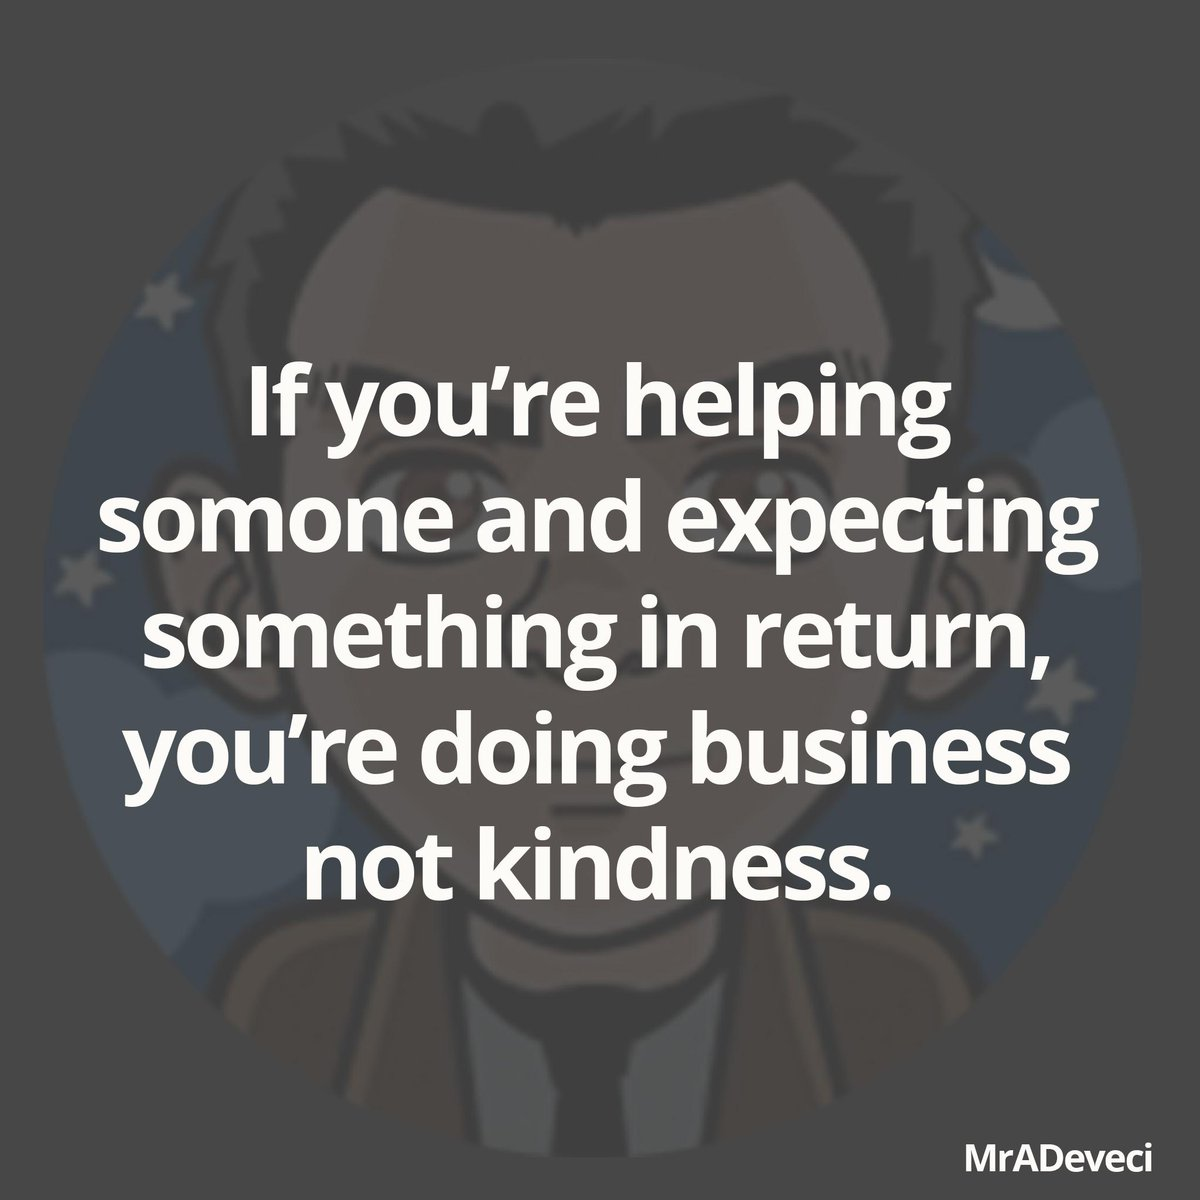 If you're helping someone and expecting something in return, you're doing business and not kindness. #qotd #quote http://t.co/auzdo1cZta